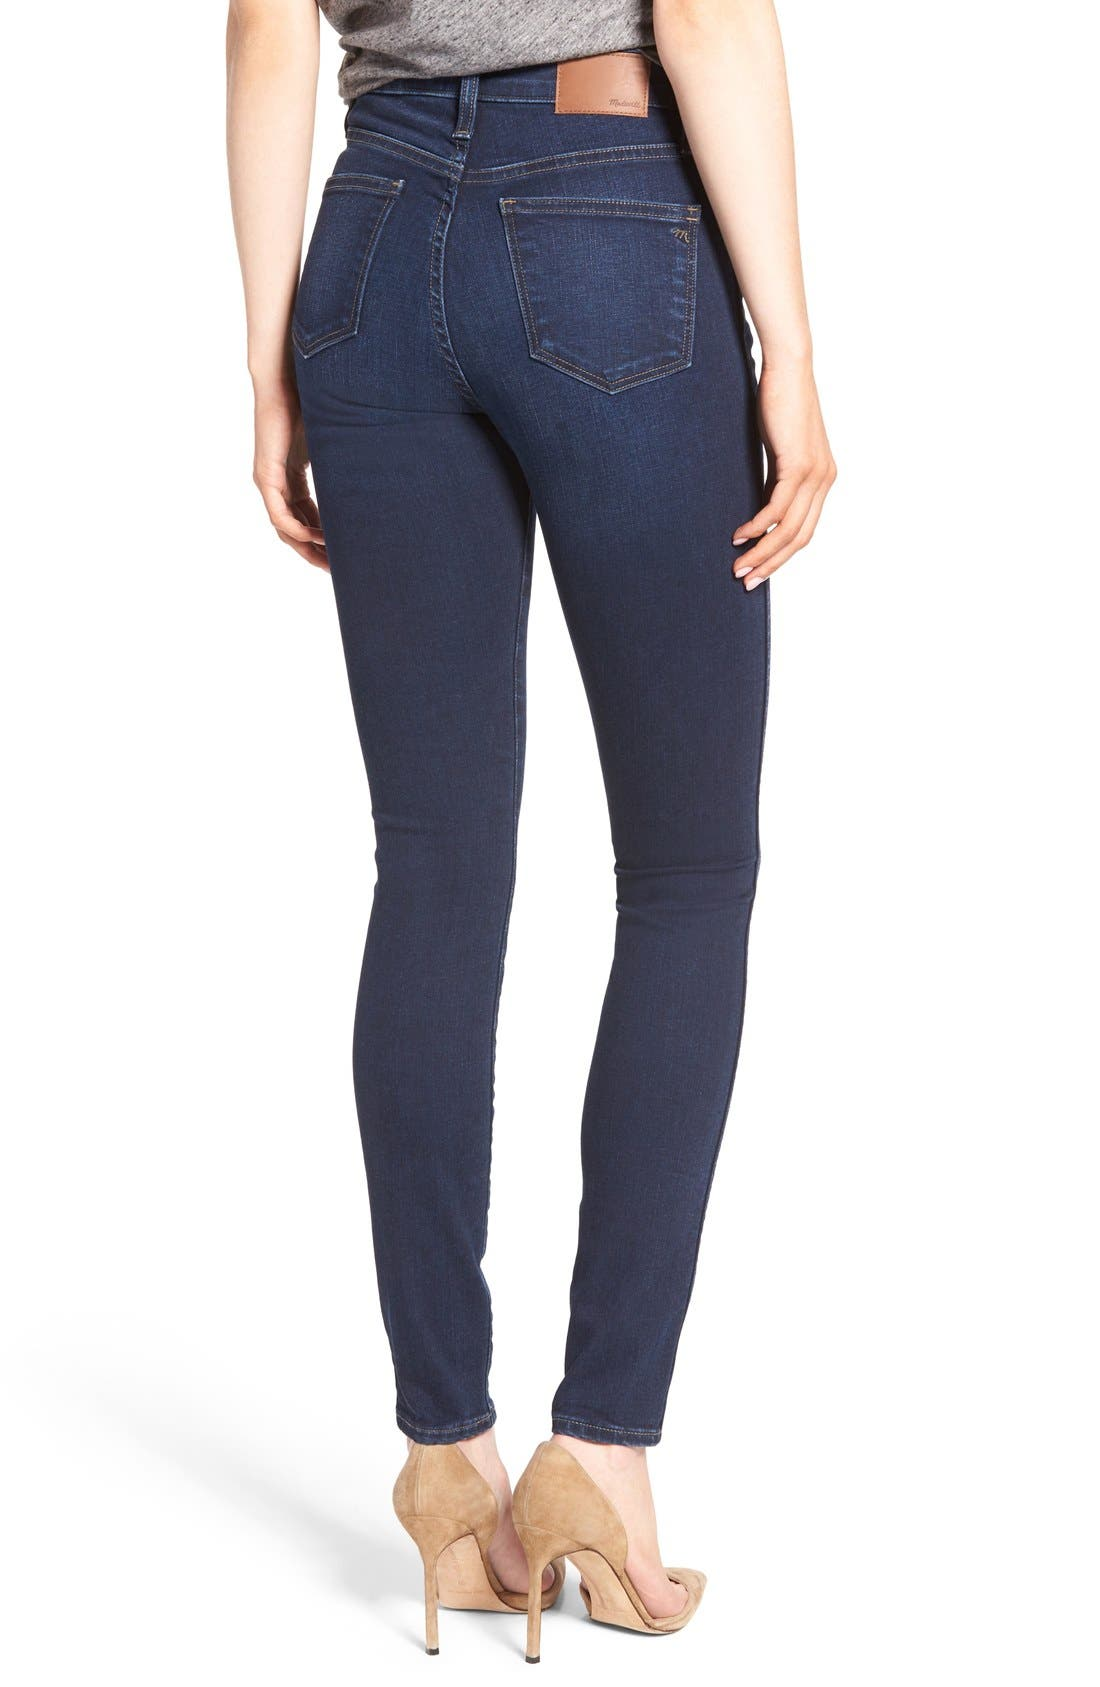 10-Inch High-Rise Skinny Jeans,                             Alternate thumbnail 13, color,                             HAYES WASH